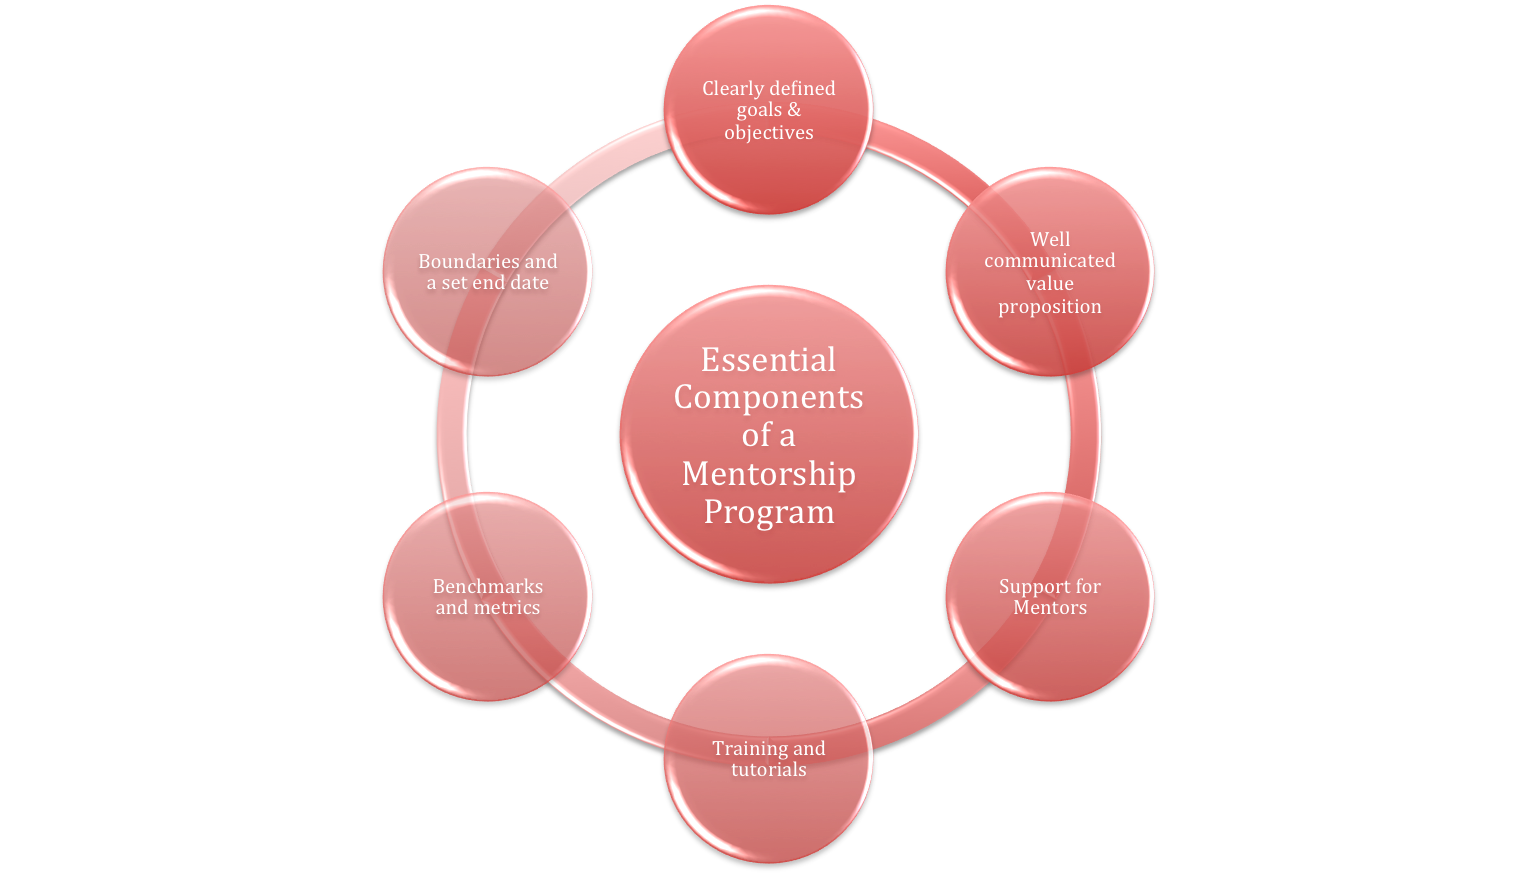 Essential Components of a Mentorship Program